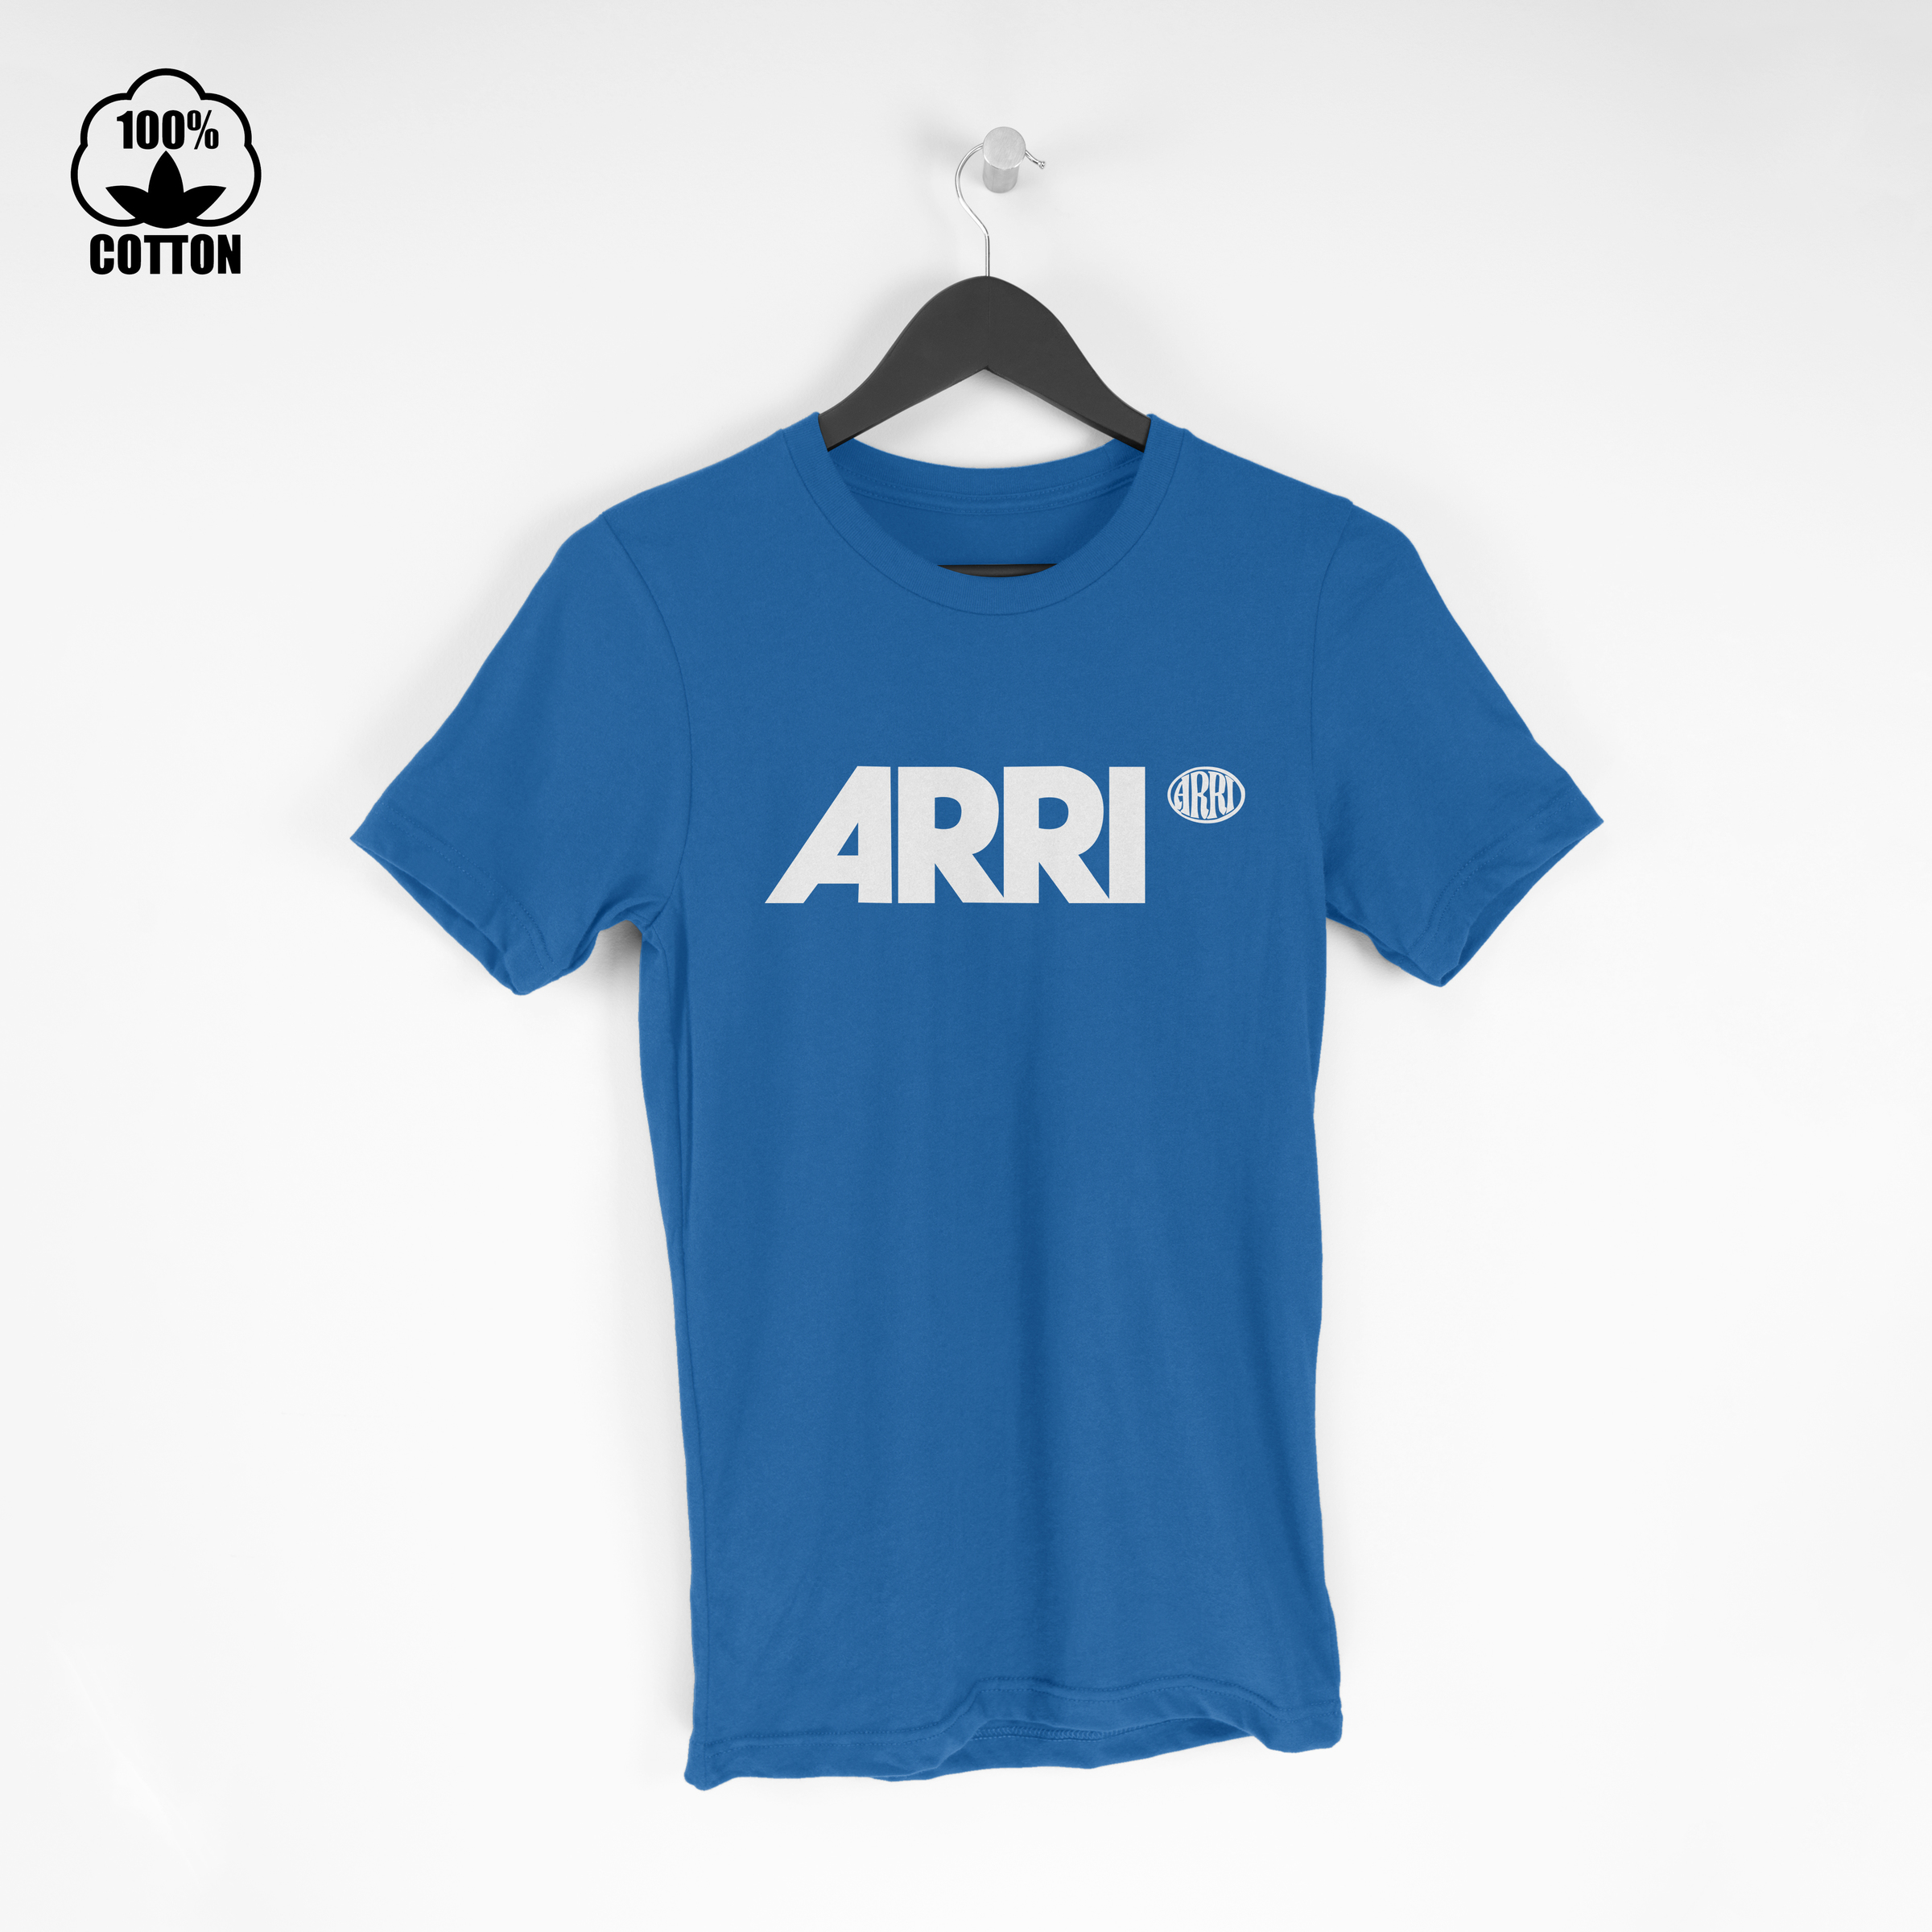 Arri Inspiring Your Vision Small Logo New Mens Tshirt Tee Size S-XXL RoyalBlue.jpg